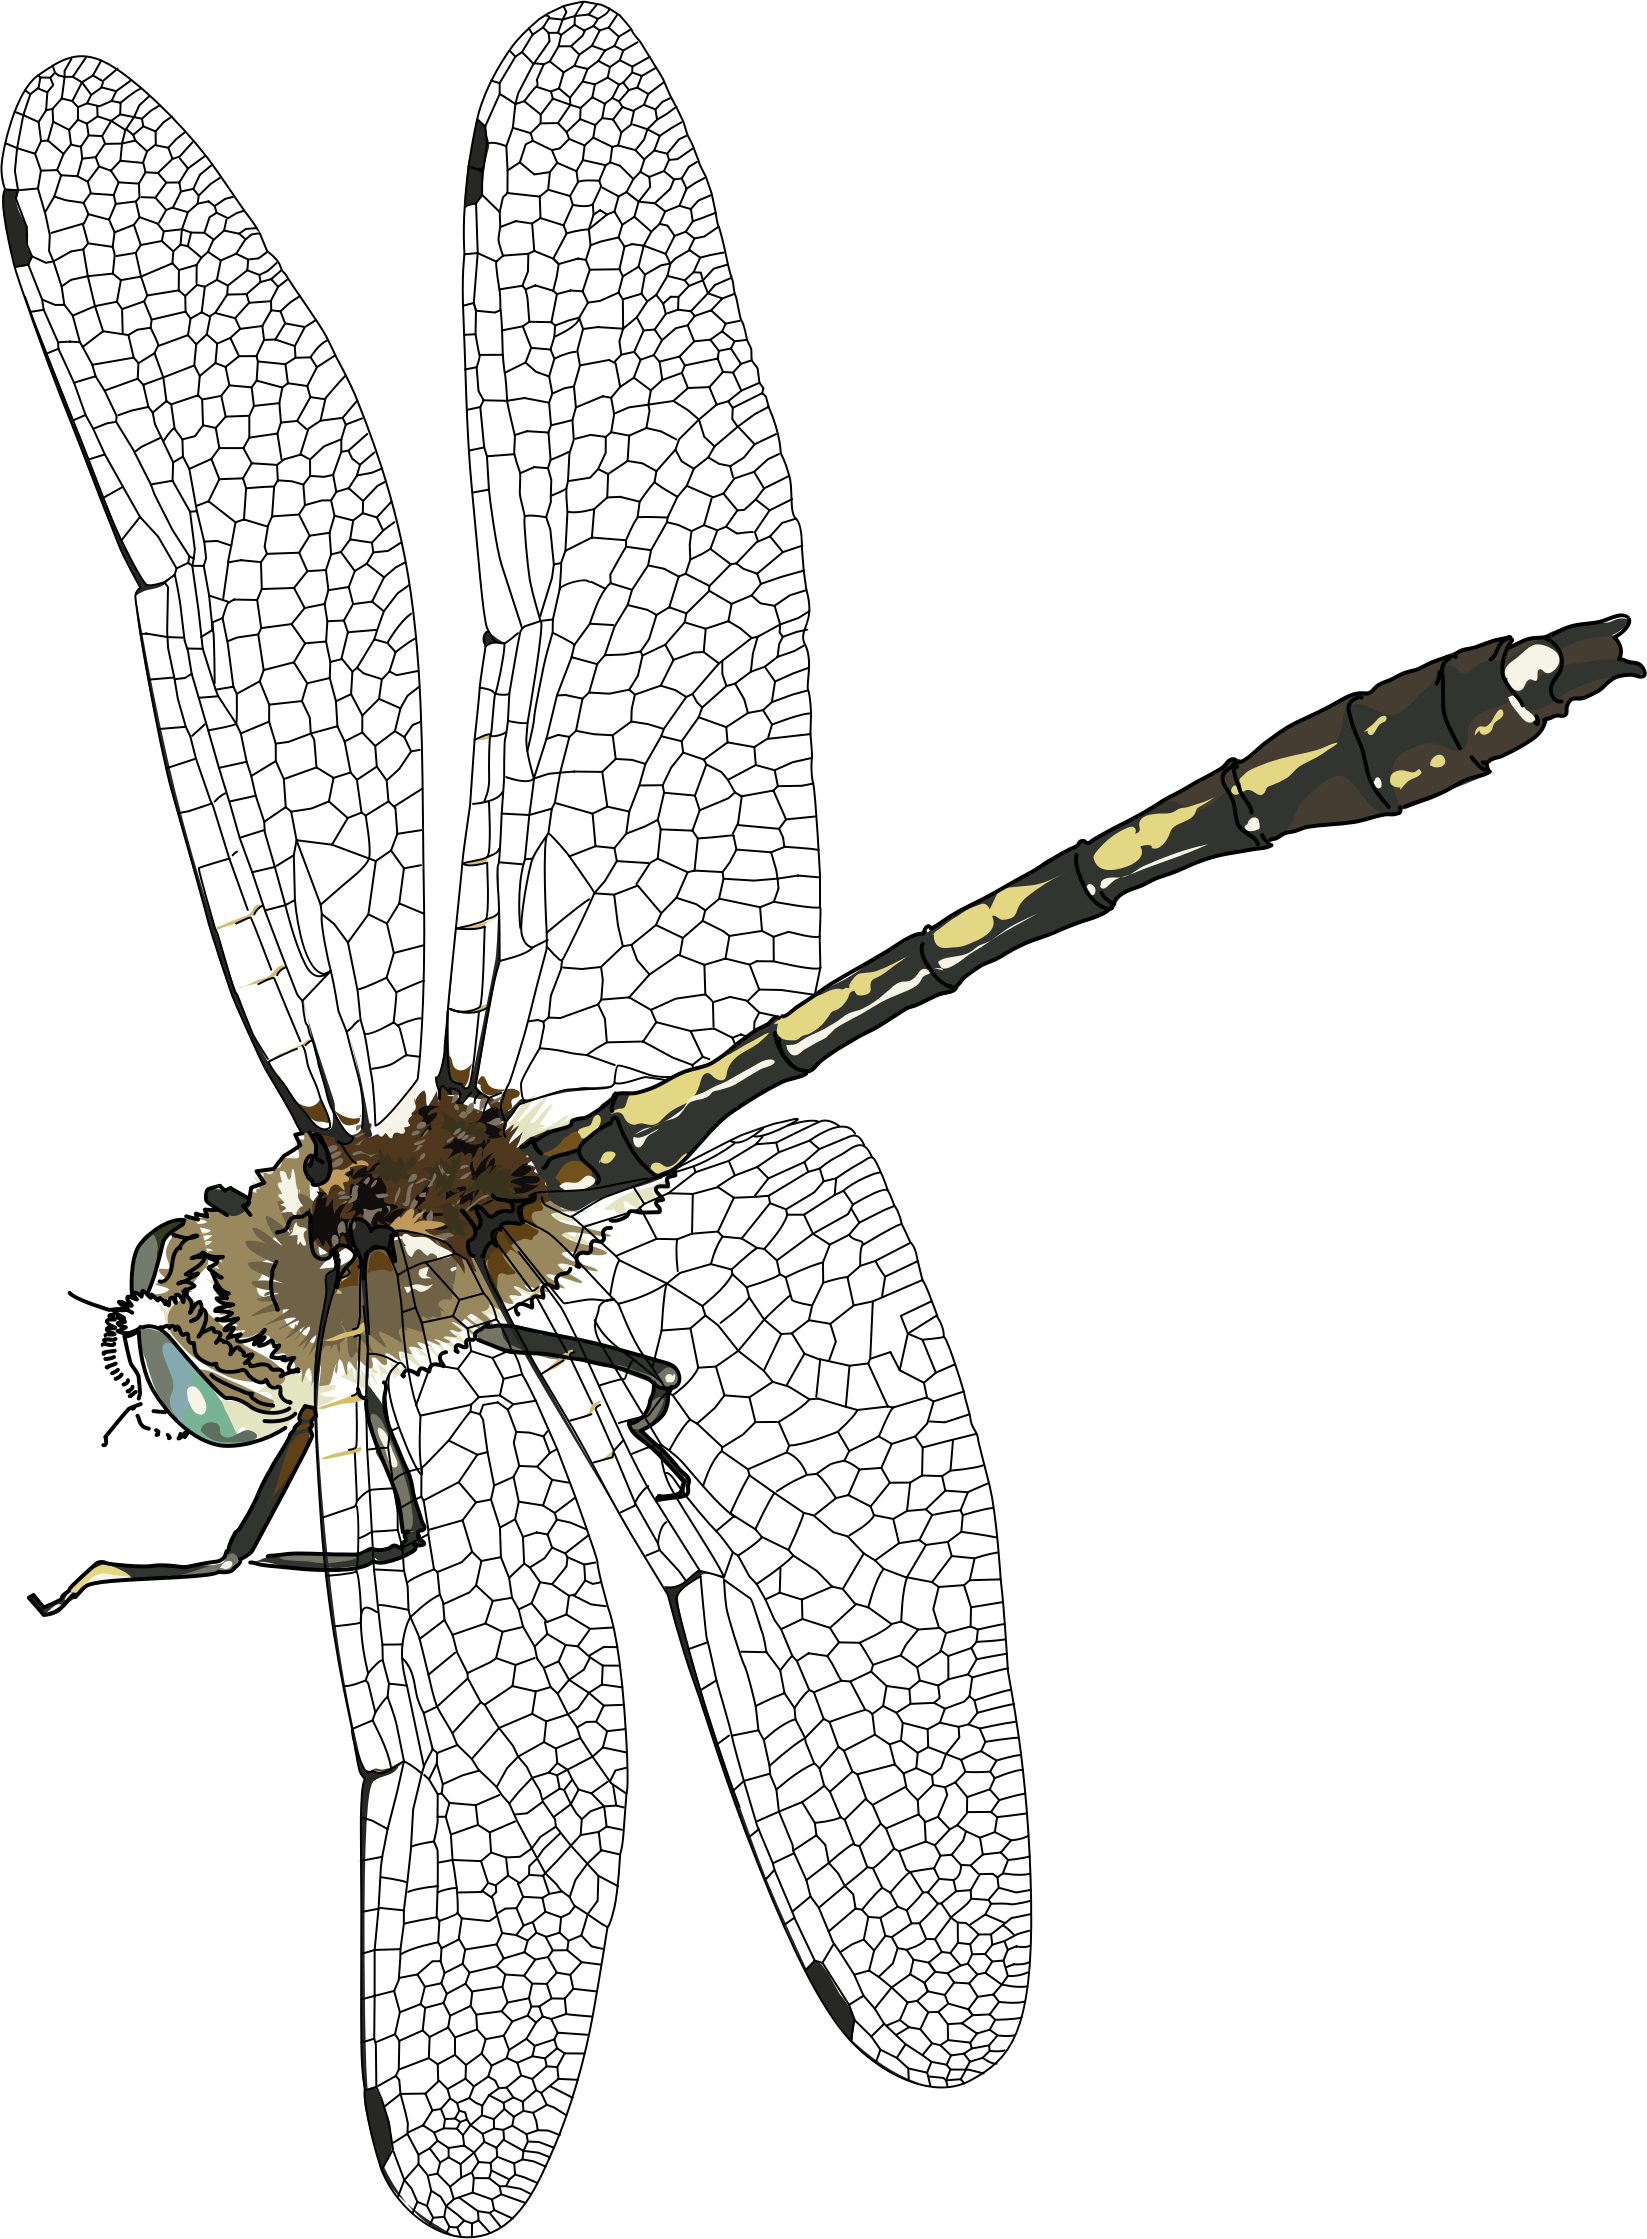 Transparent background png mart. Insects clipart dragonfly